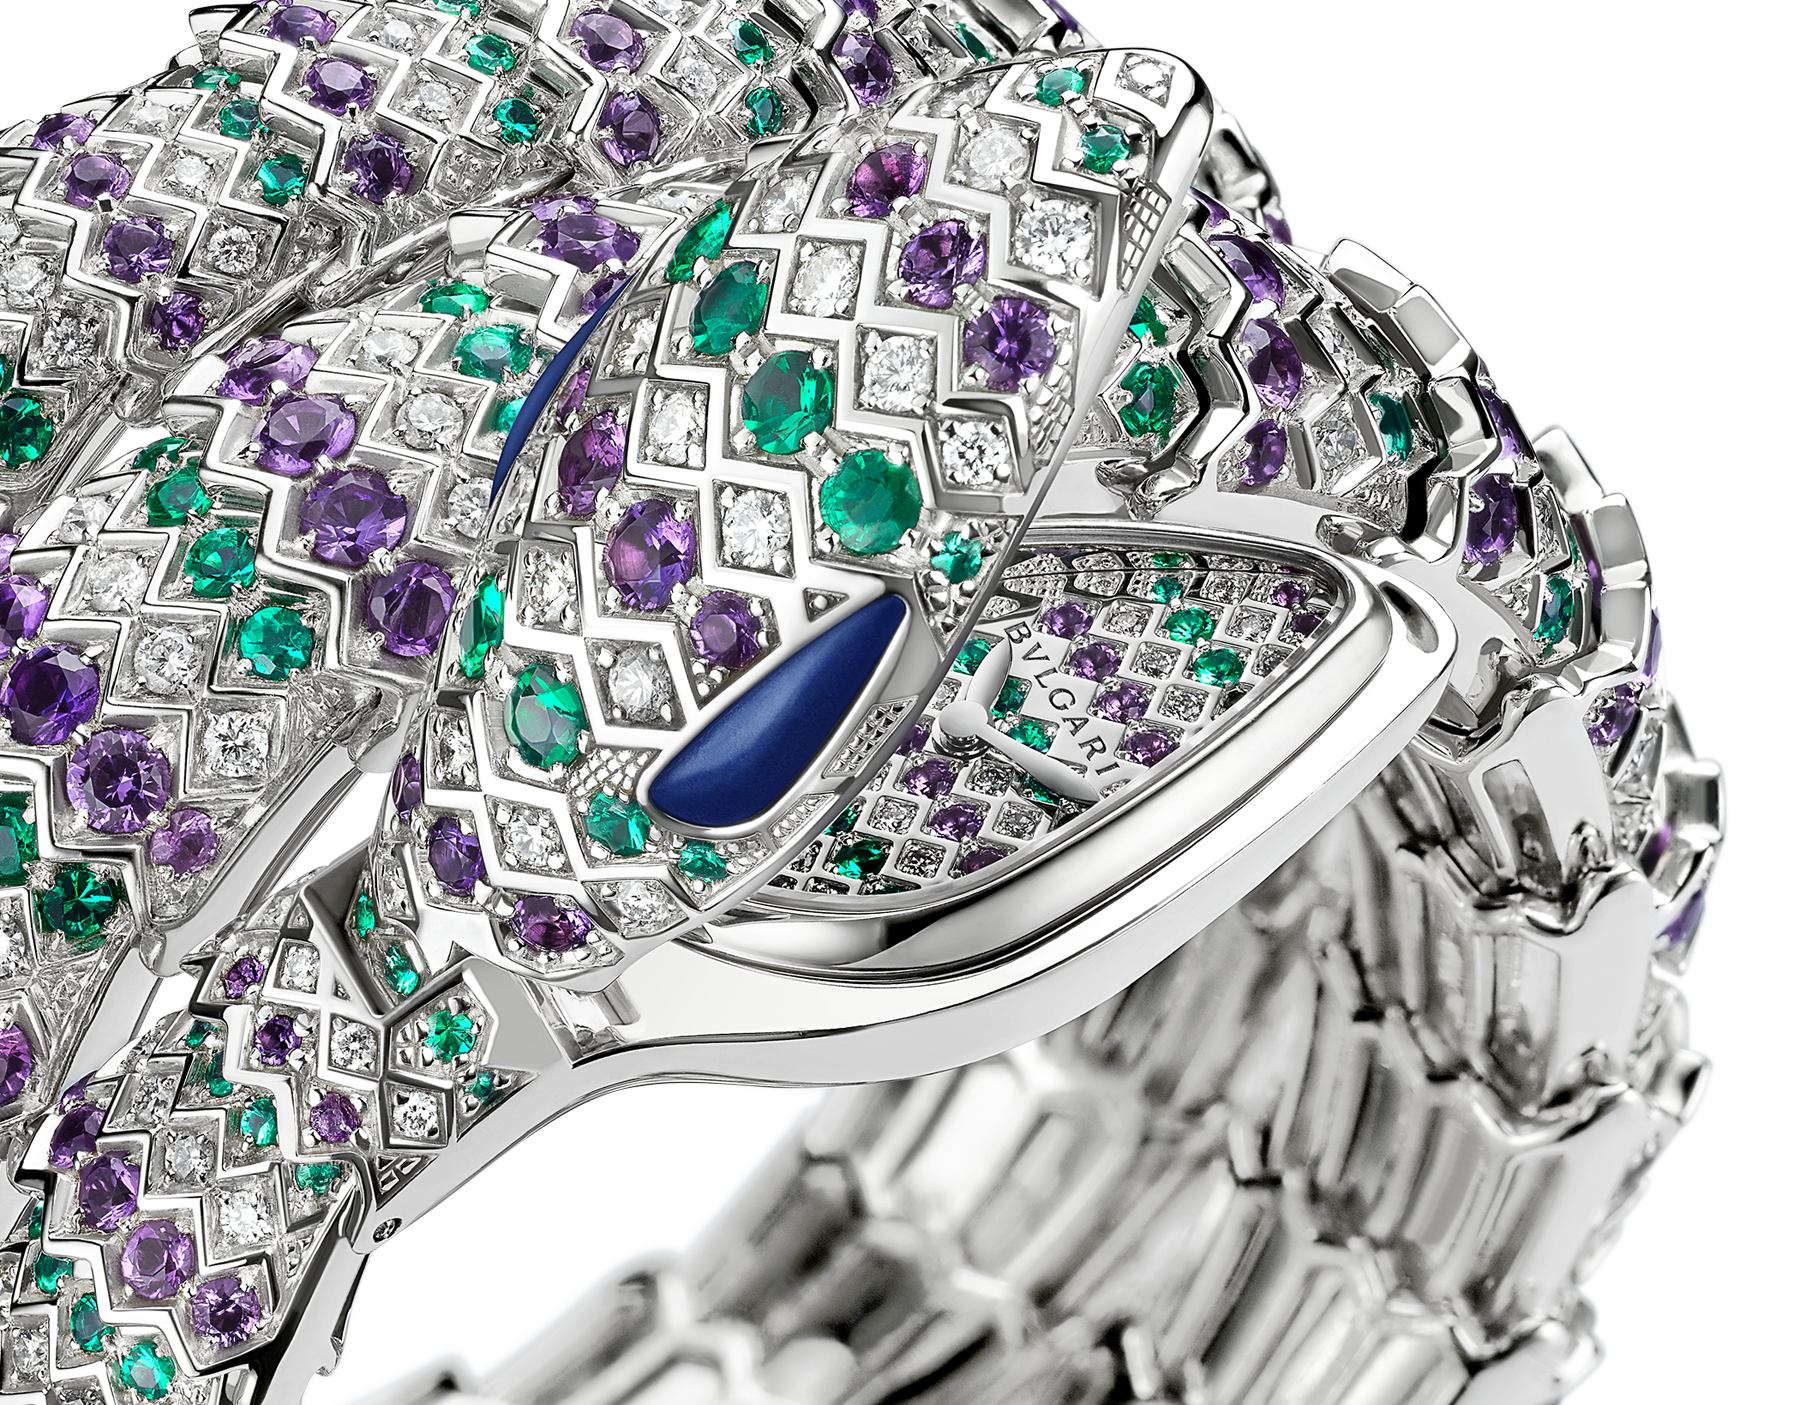 Serpenti Secret Watch with 18 kt white gold head set with brilliant cut diamonds, amethysts emeralds and malachite eyes, 18 kt white gold case, 18 kt white gold dial and double spiral bracelet, both set with brilliant cut diamonds, amethysts and emeralds. 101864 image 2